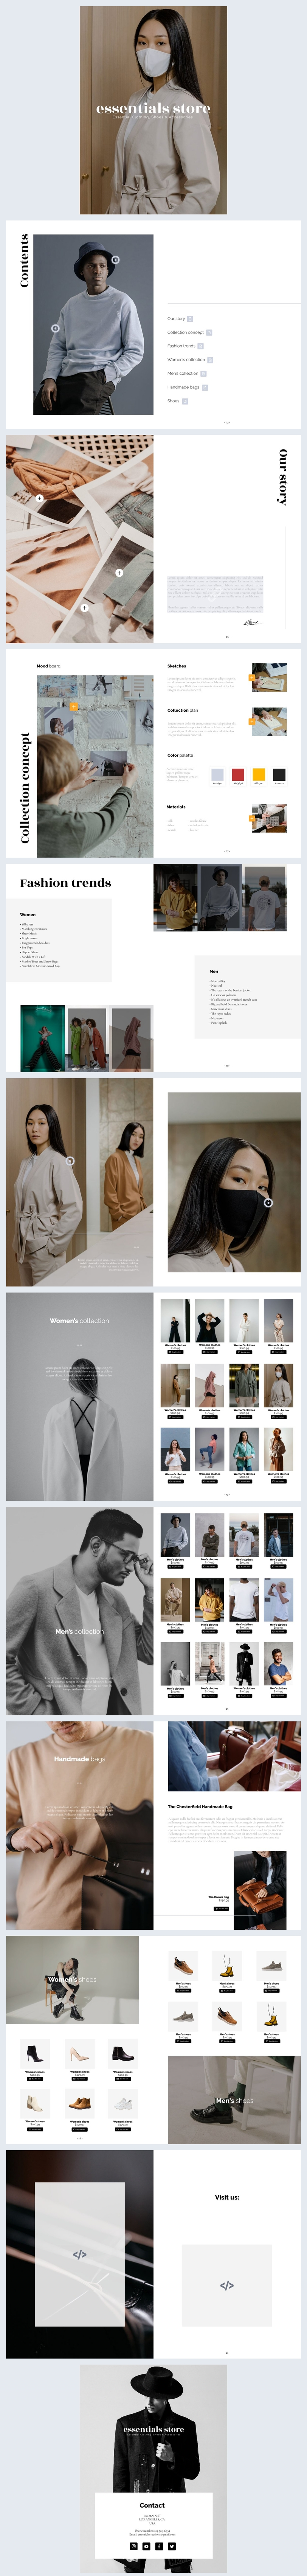 Design de catalogue de mode interactif